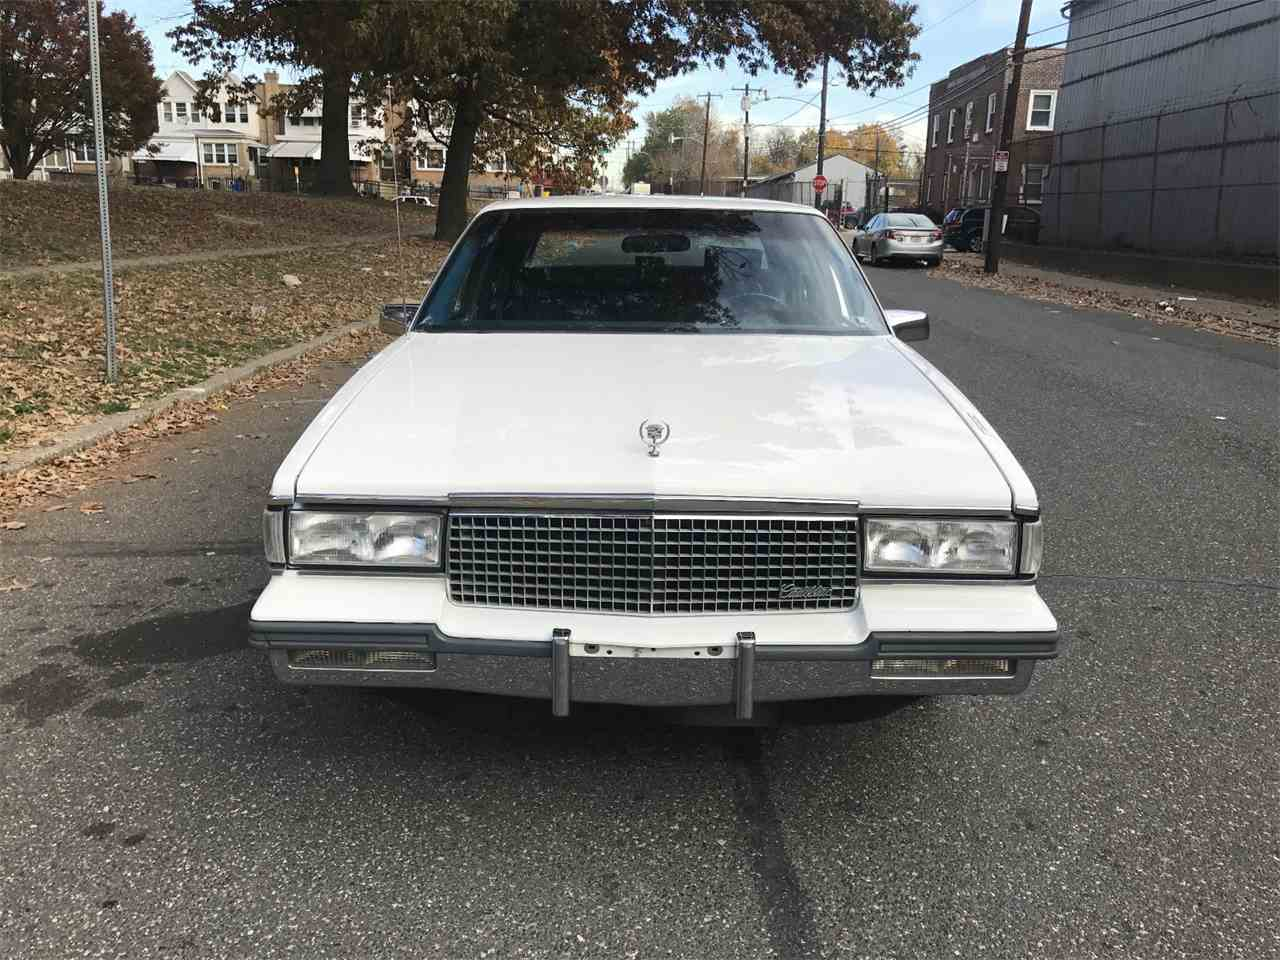 Large Picture of '87 Cadillac DeVille located in Penn Valley Pennsylvania - $4,995.00 Offered by a Private Seller - KJIN